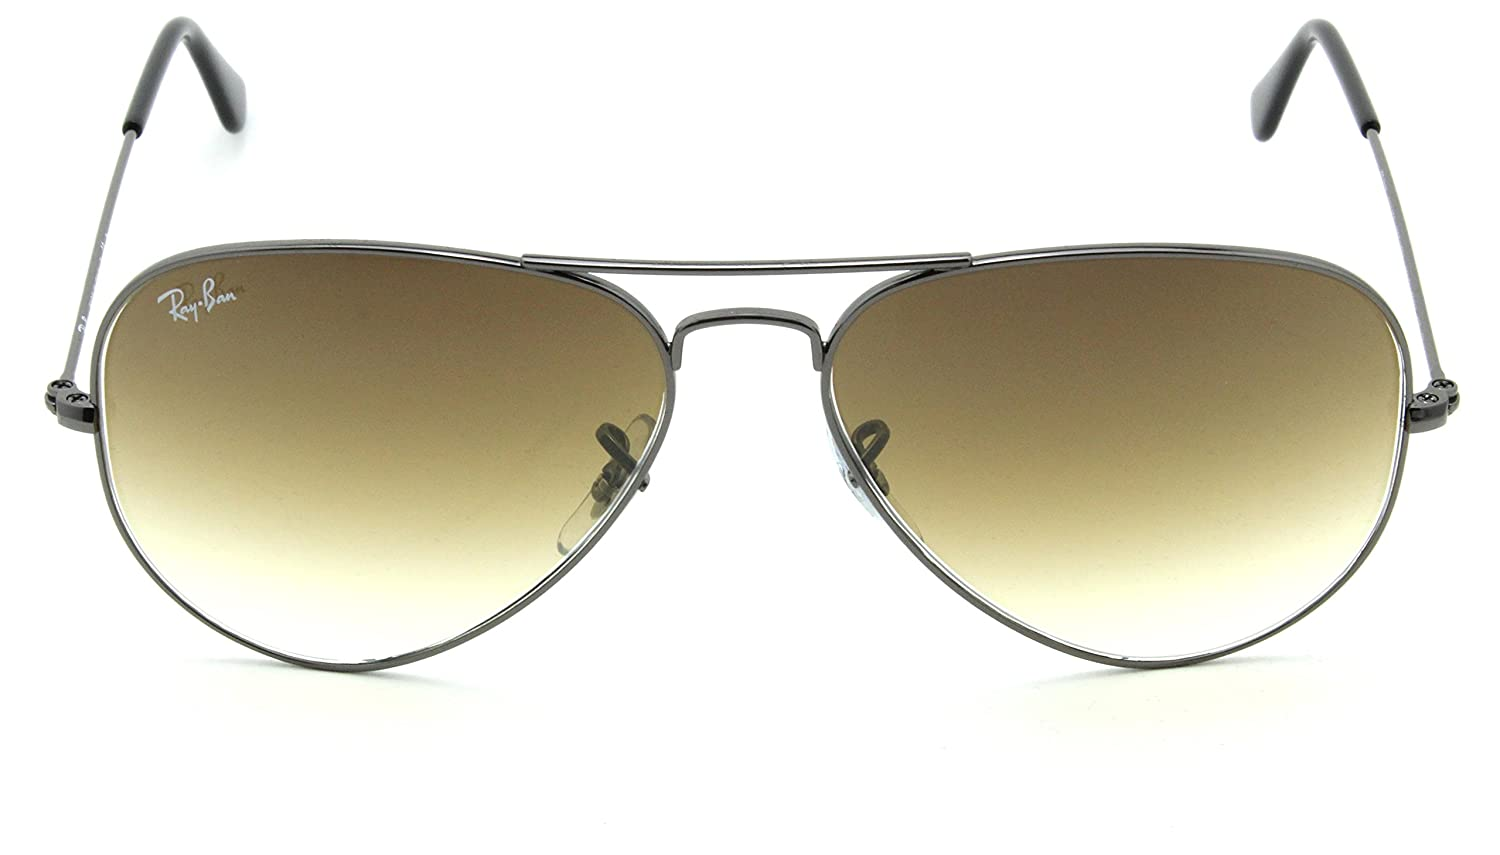 2b89841a9a Amazon.com  Ray-Ban RB3025 Aviator Gradient Unisex Sunglasses Brown 004 51-58mm   Clothing